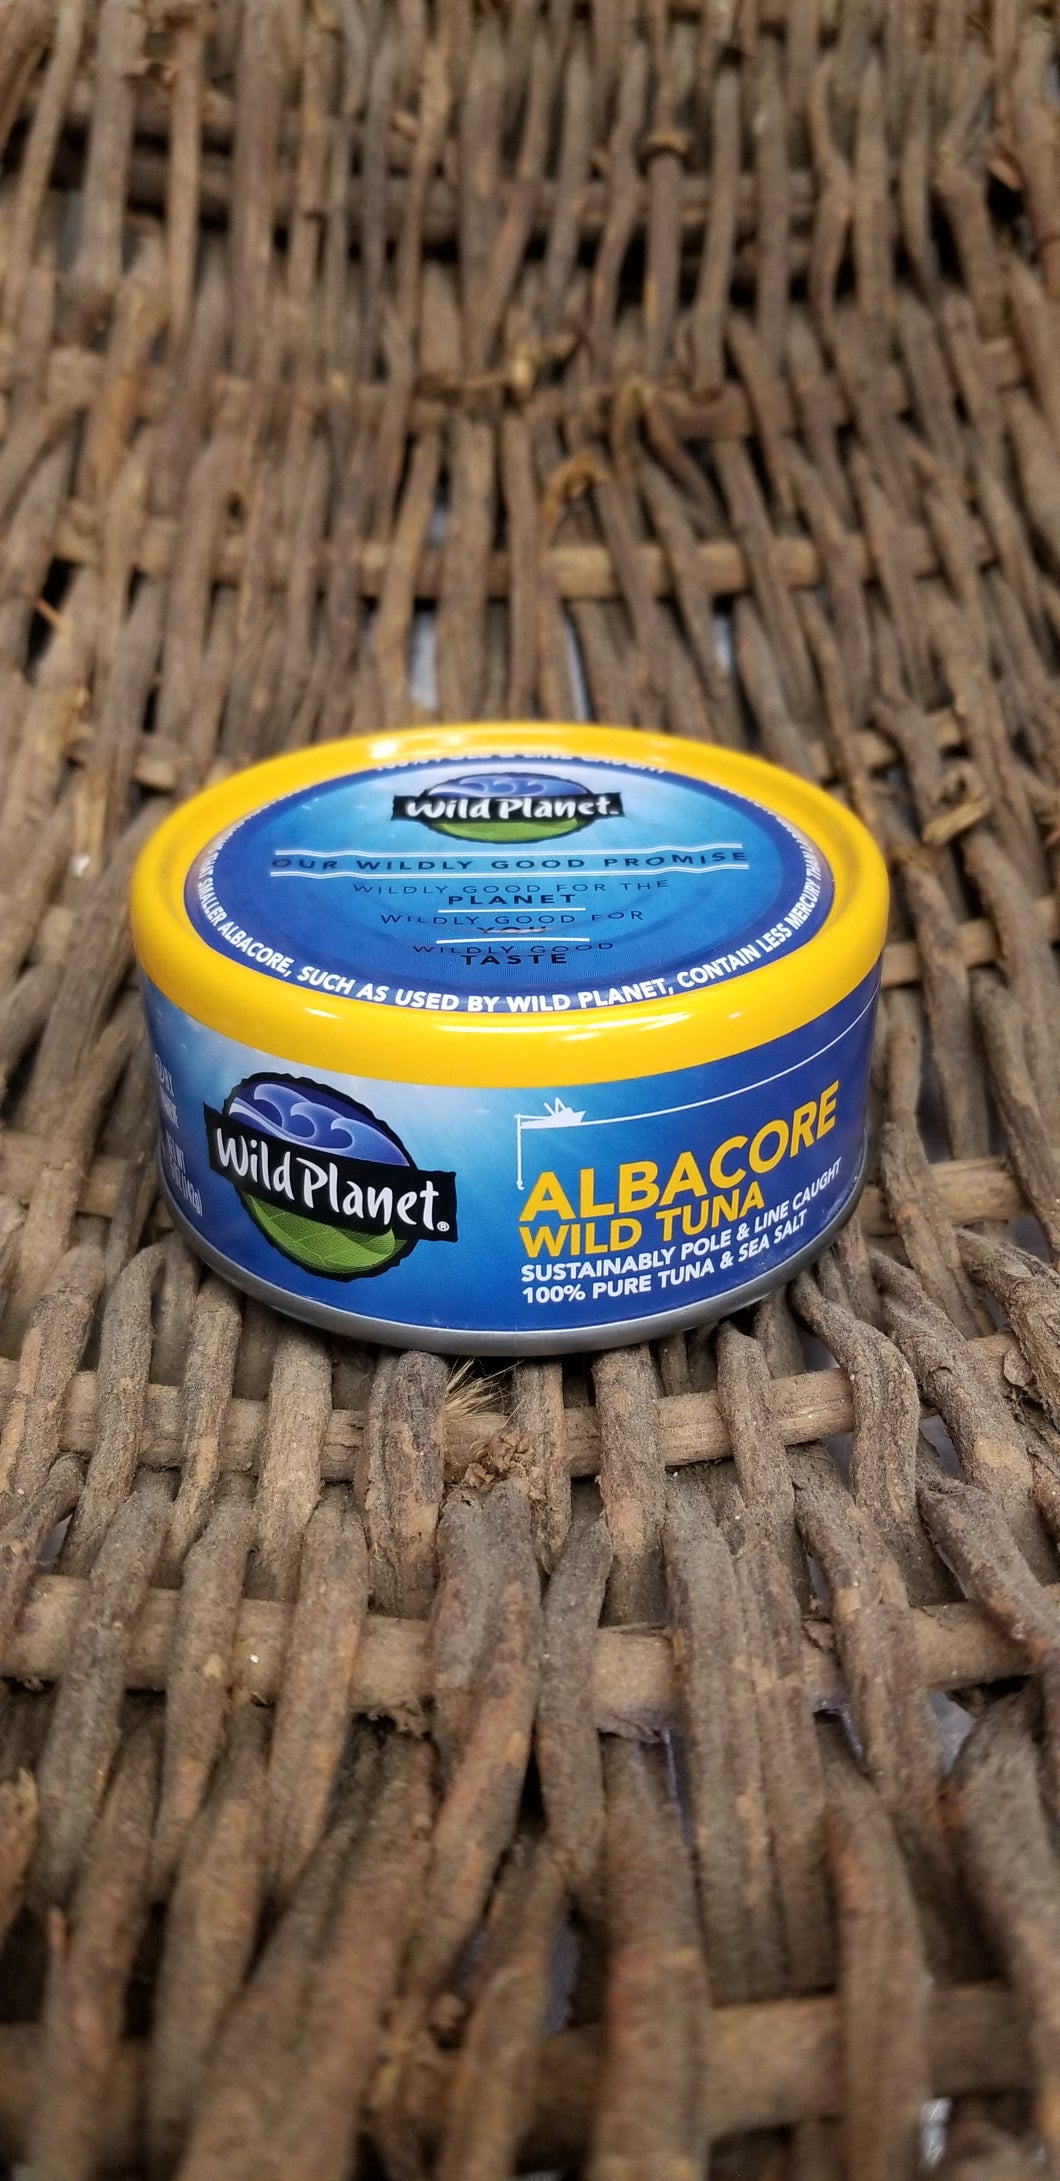 Wild Planet Albacore Tuna (5oz)